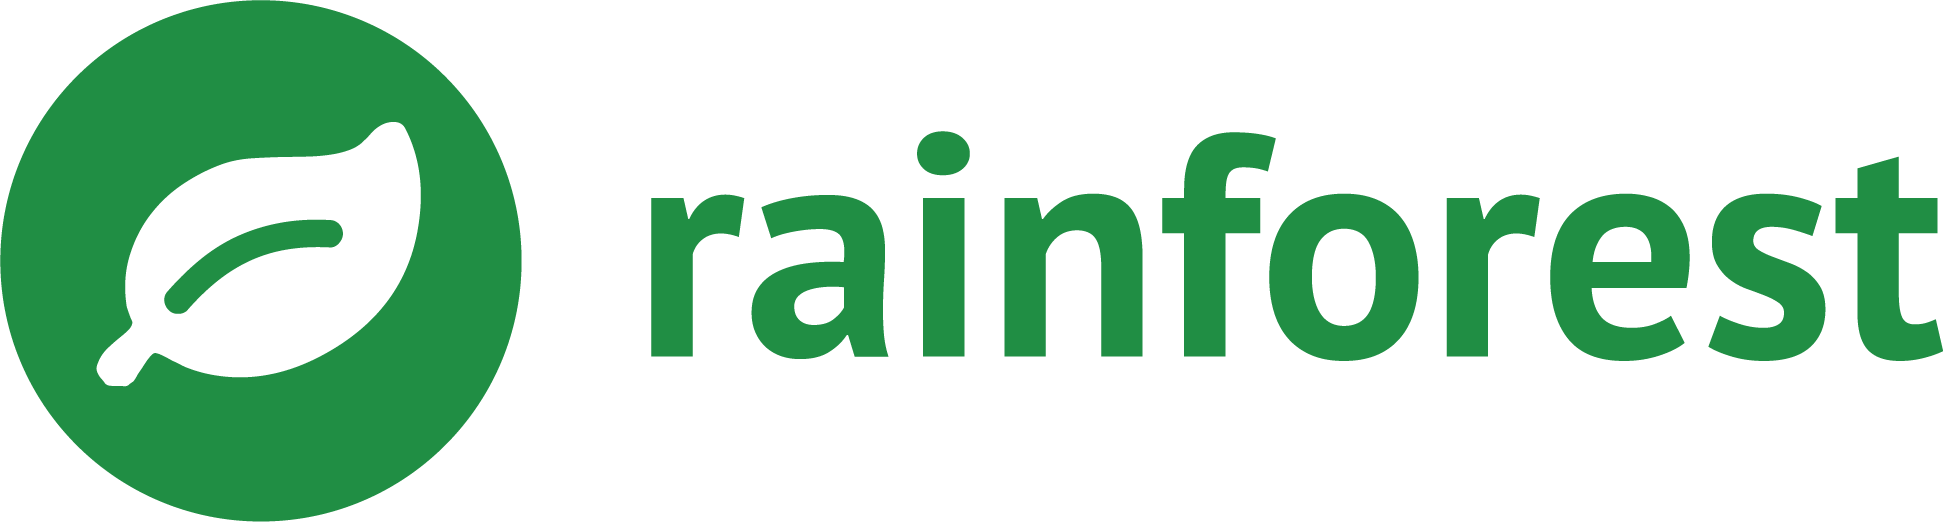 Rainforest-Logo.png